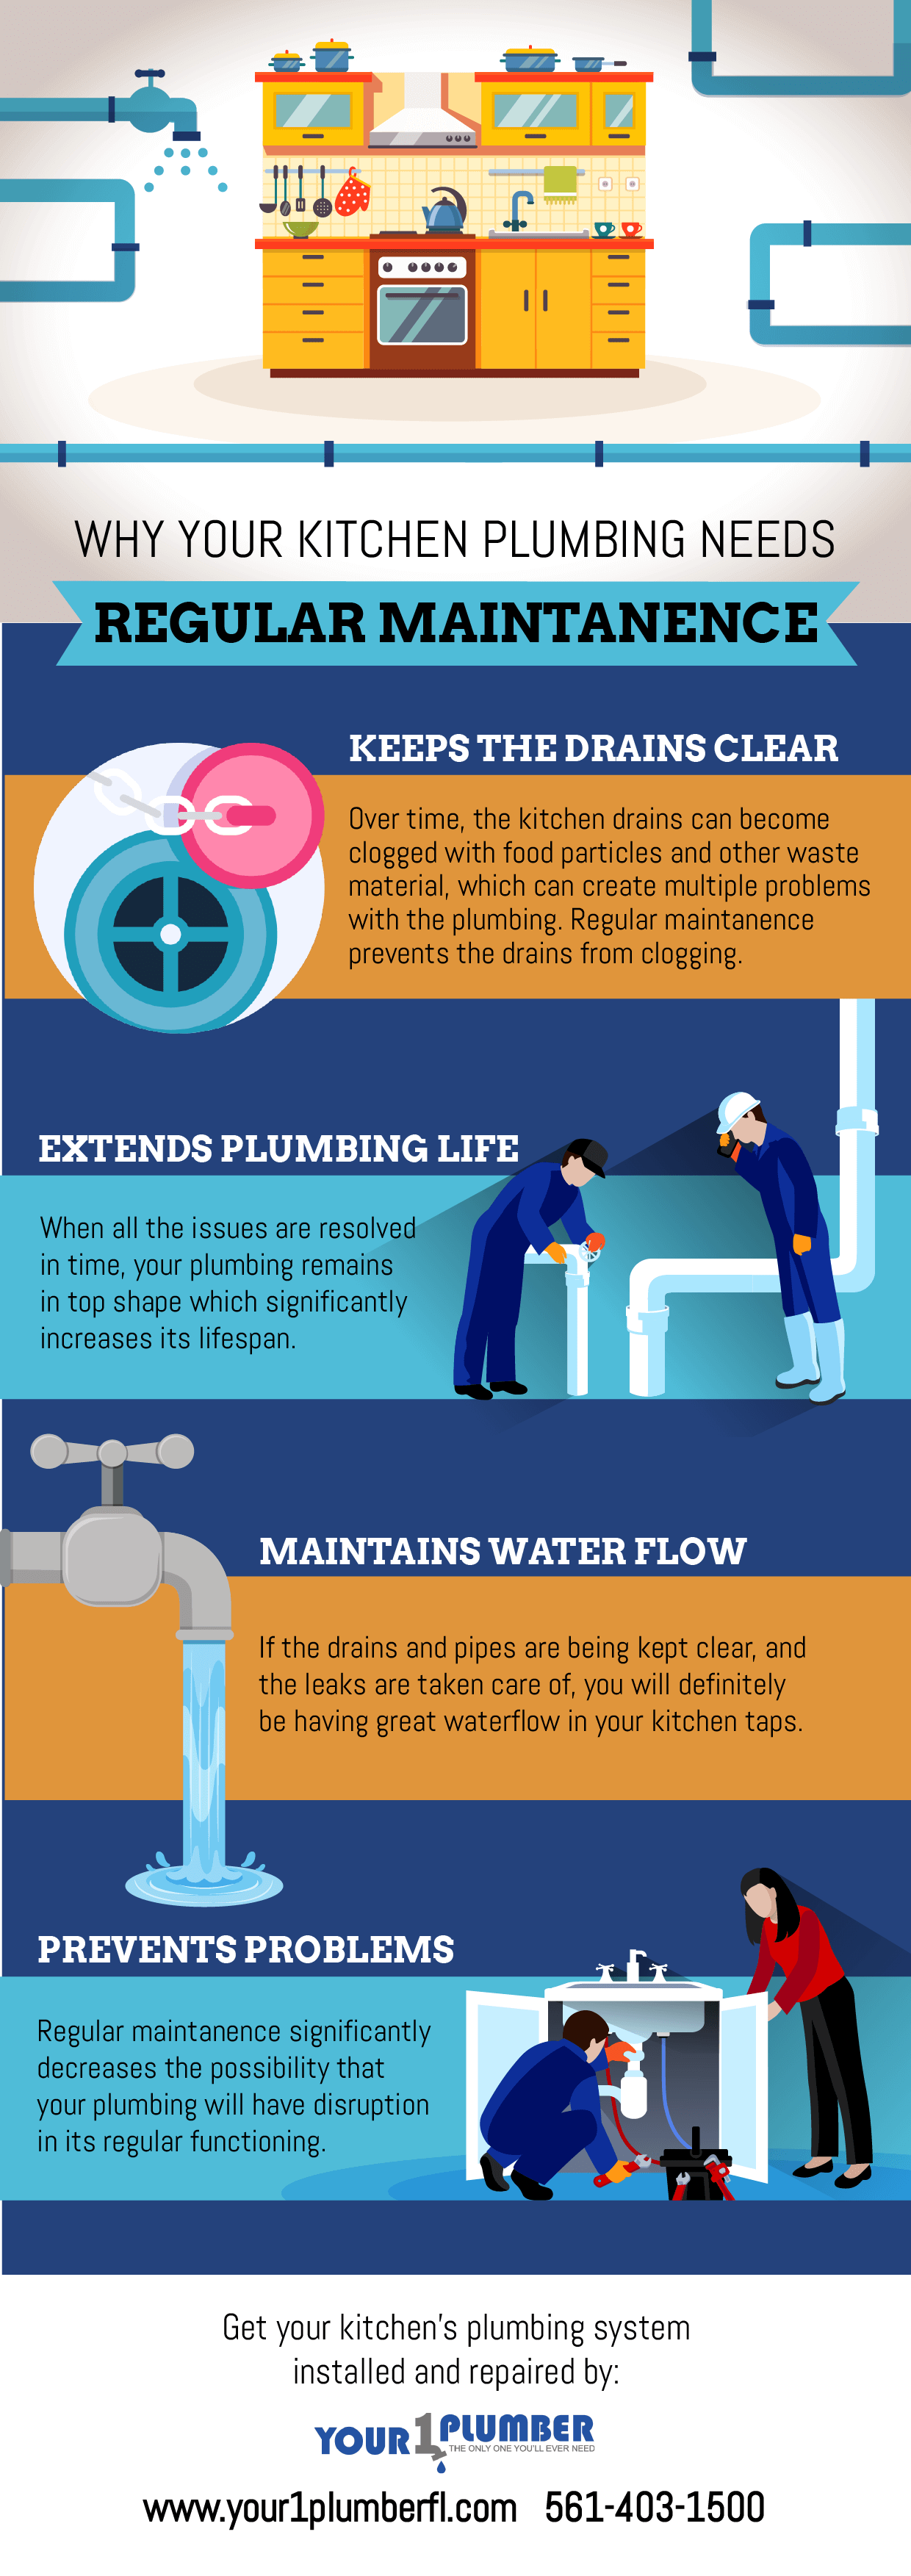 why-your-plumbing-needs-regular-plumbing